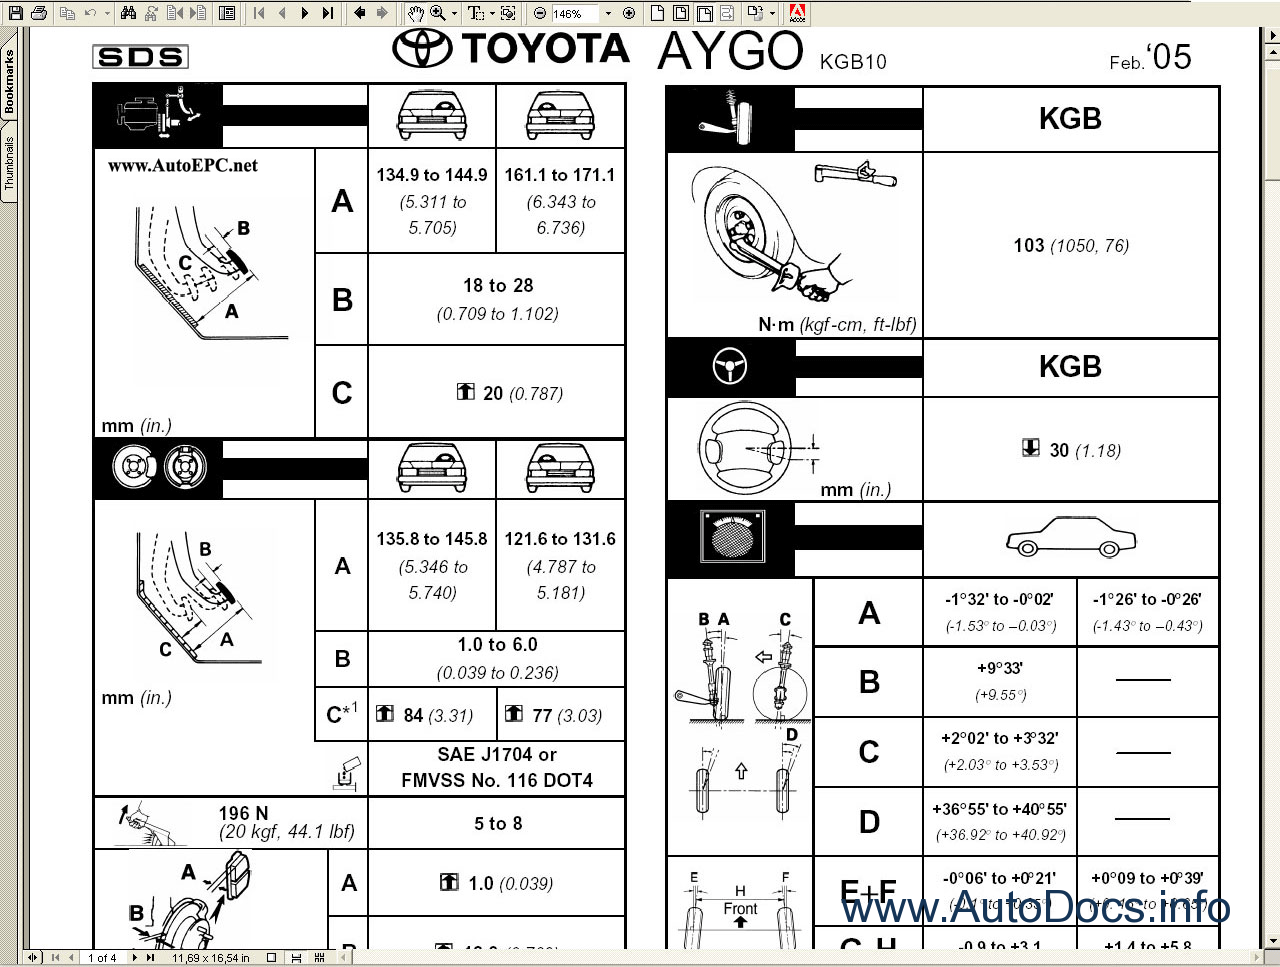 toyota aygo wiring diagram toyota aygo service manual repair manual order & download 2007 toyota camry wiring diagram